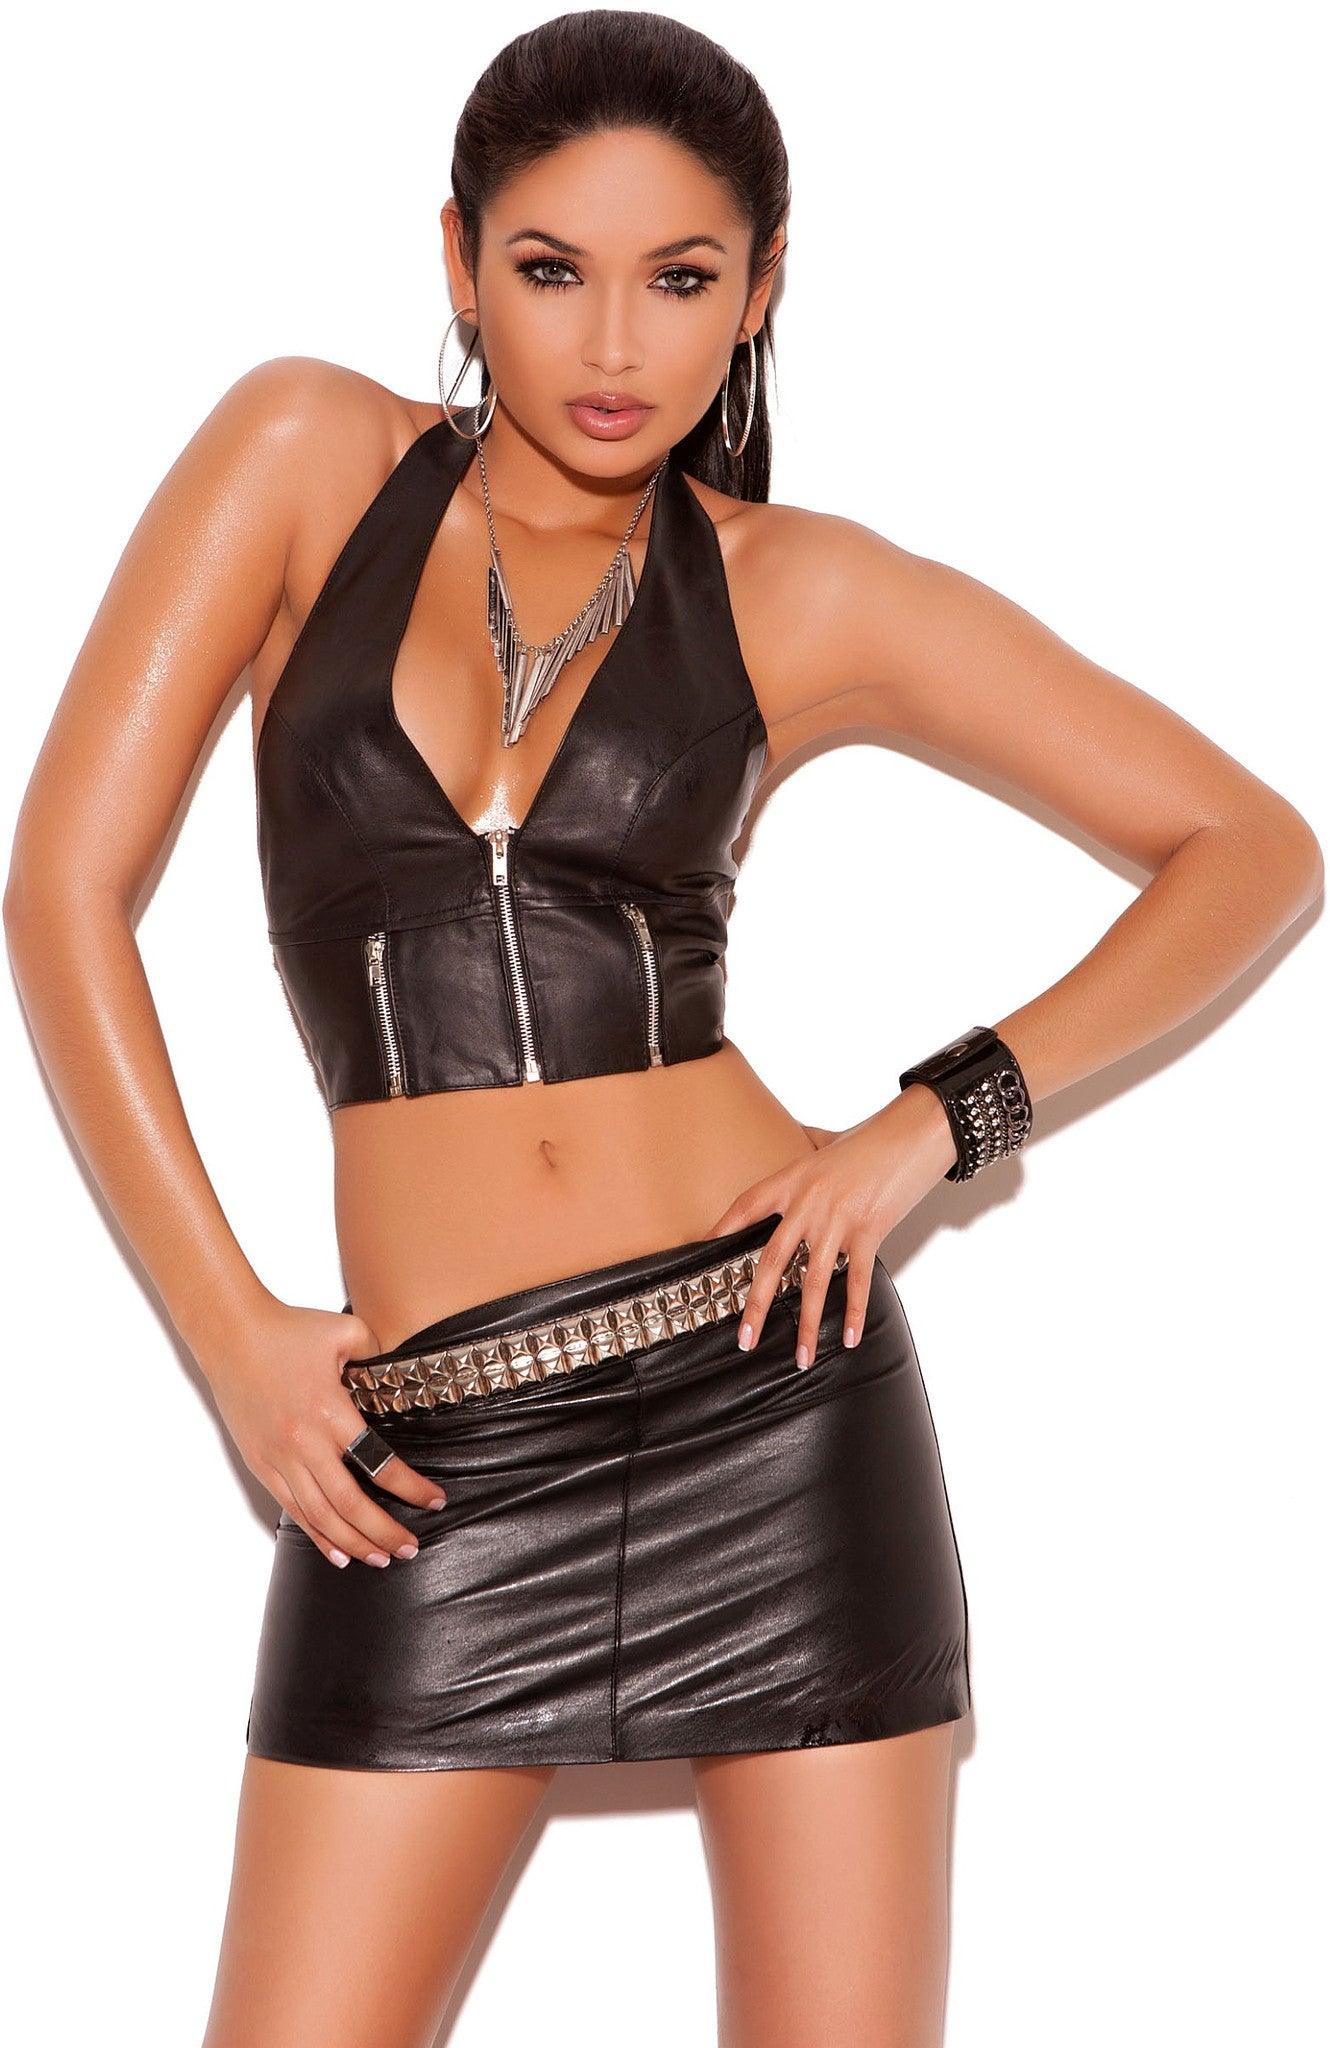 L4113 Leather top - Sexylingerieland